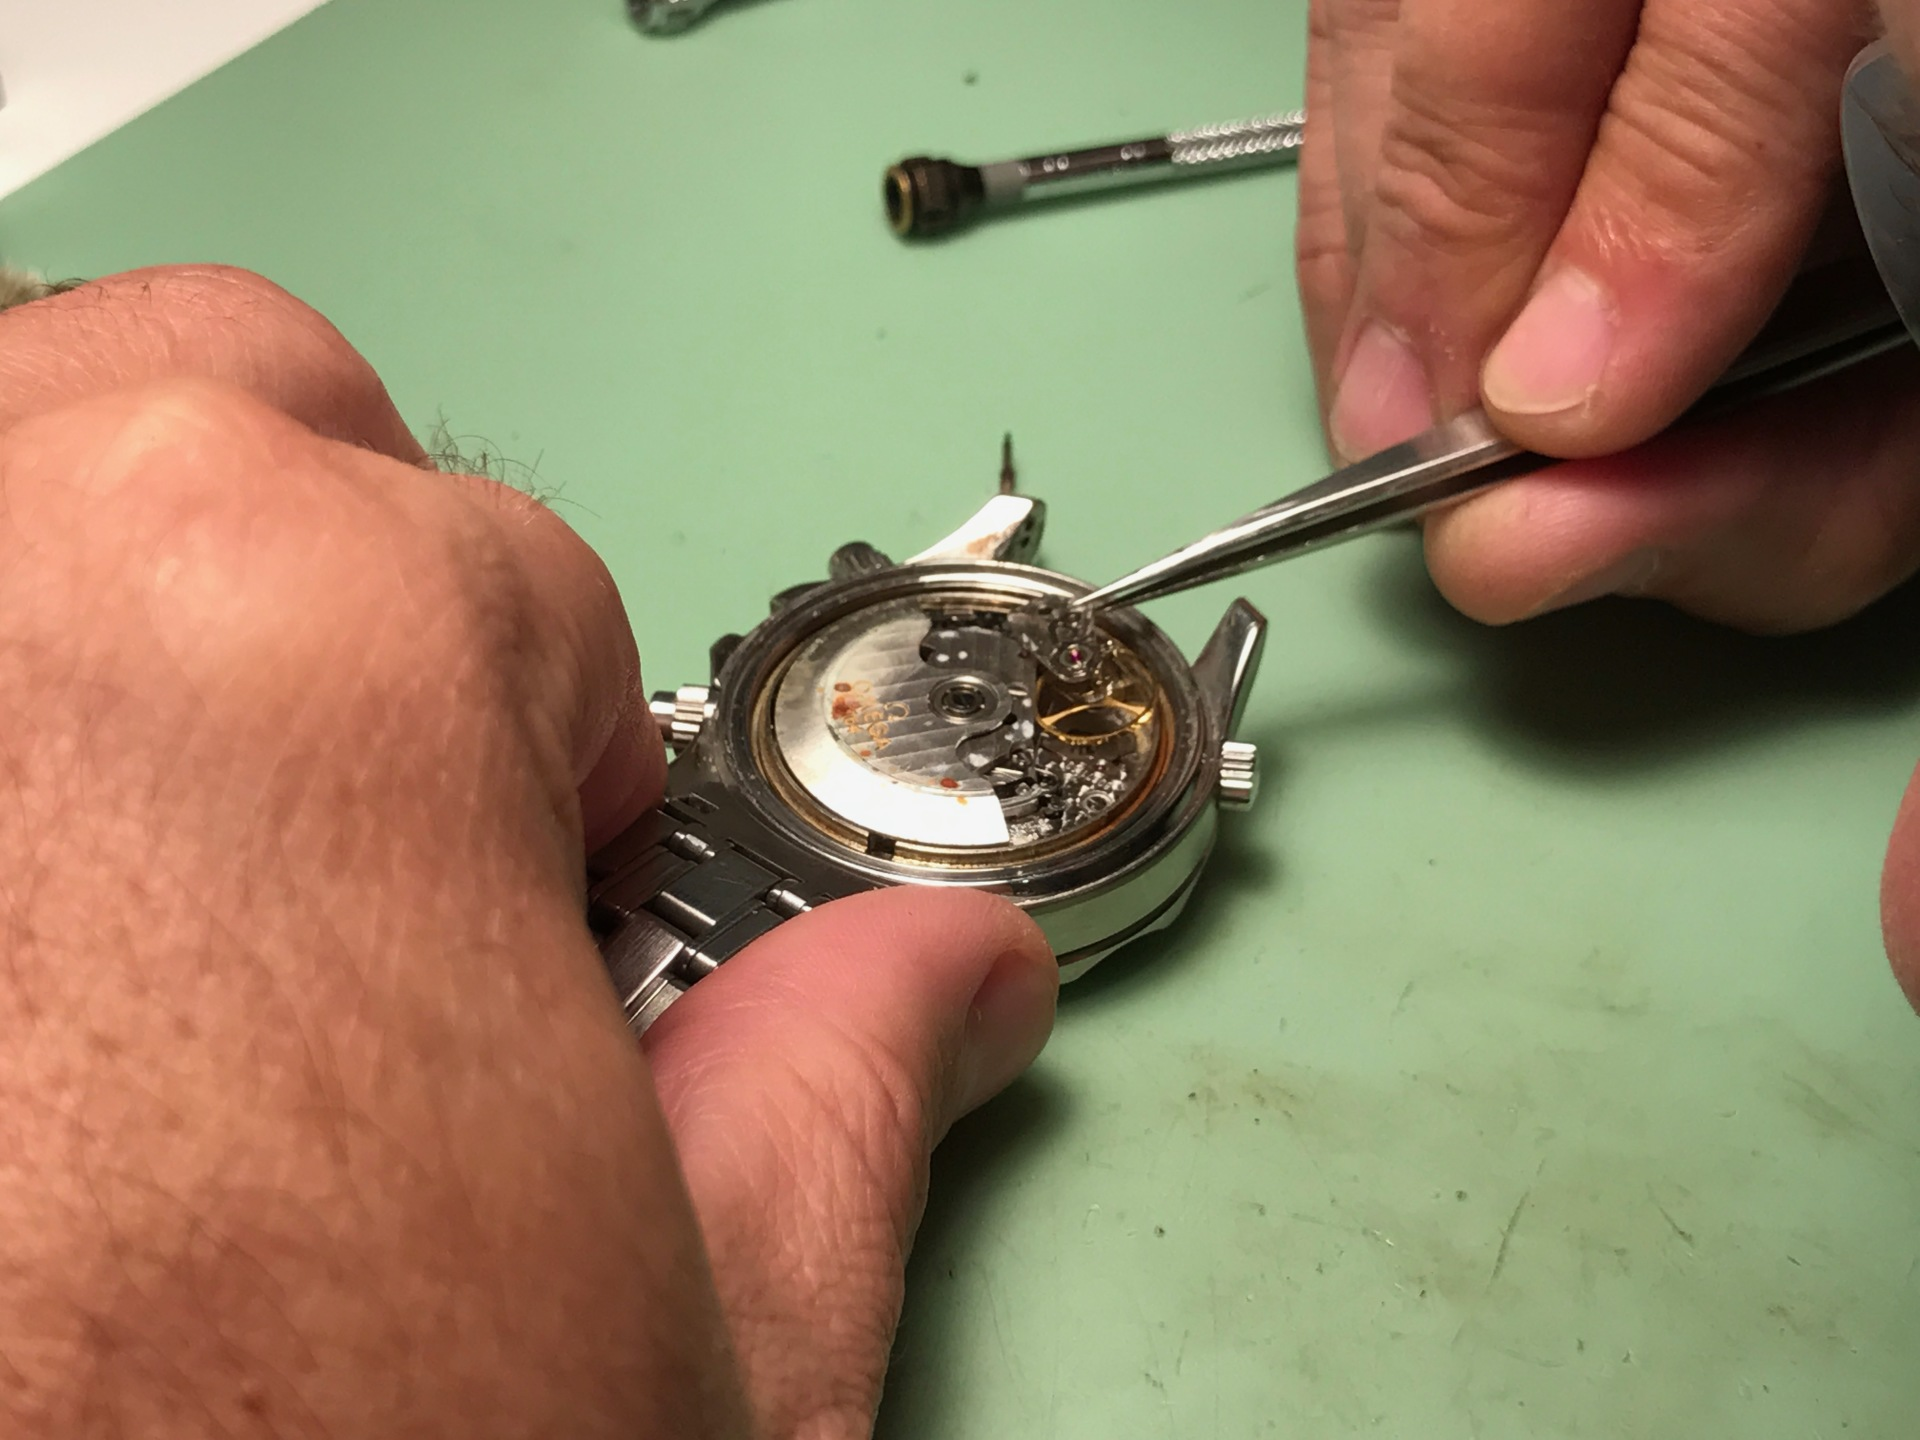 Battery changing and watch repair